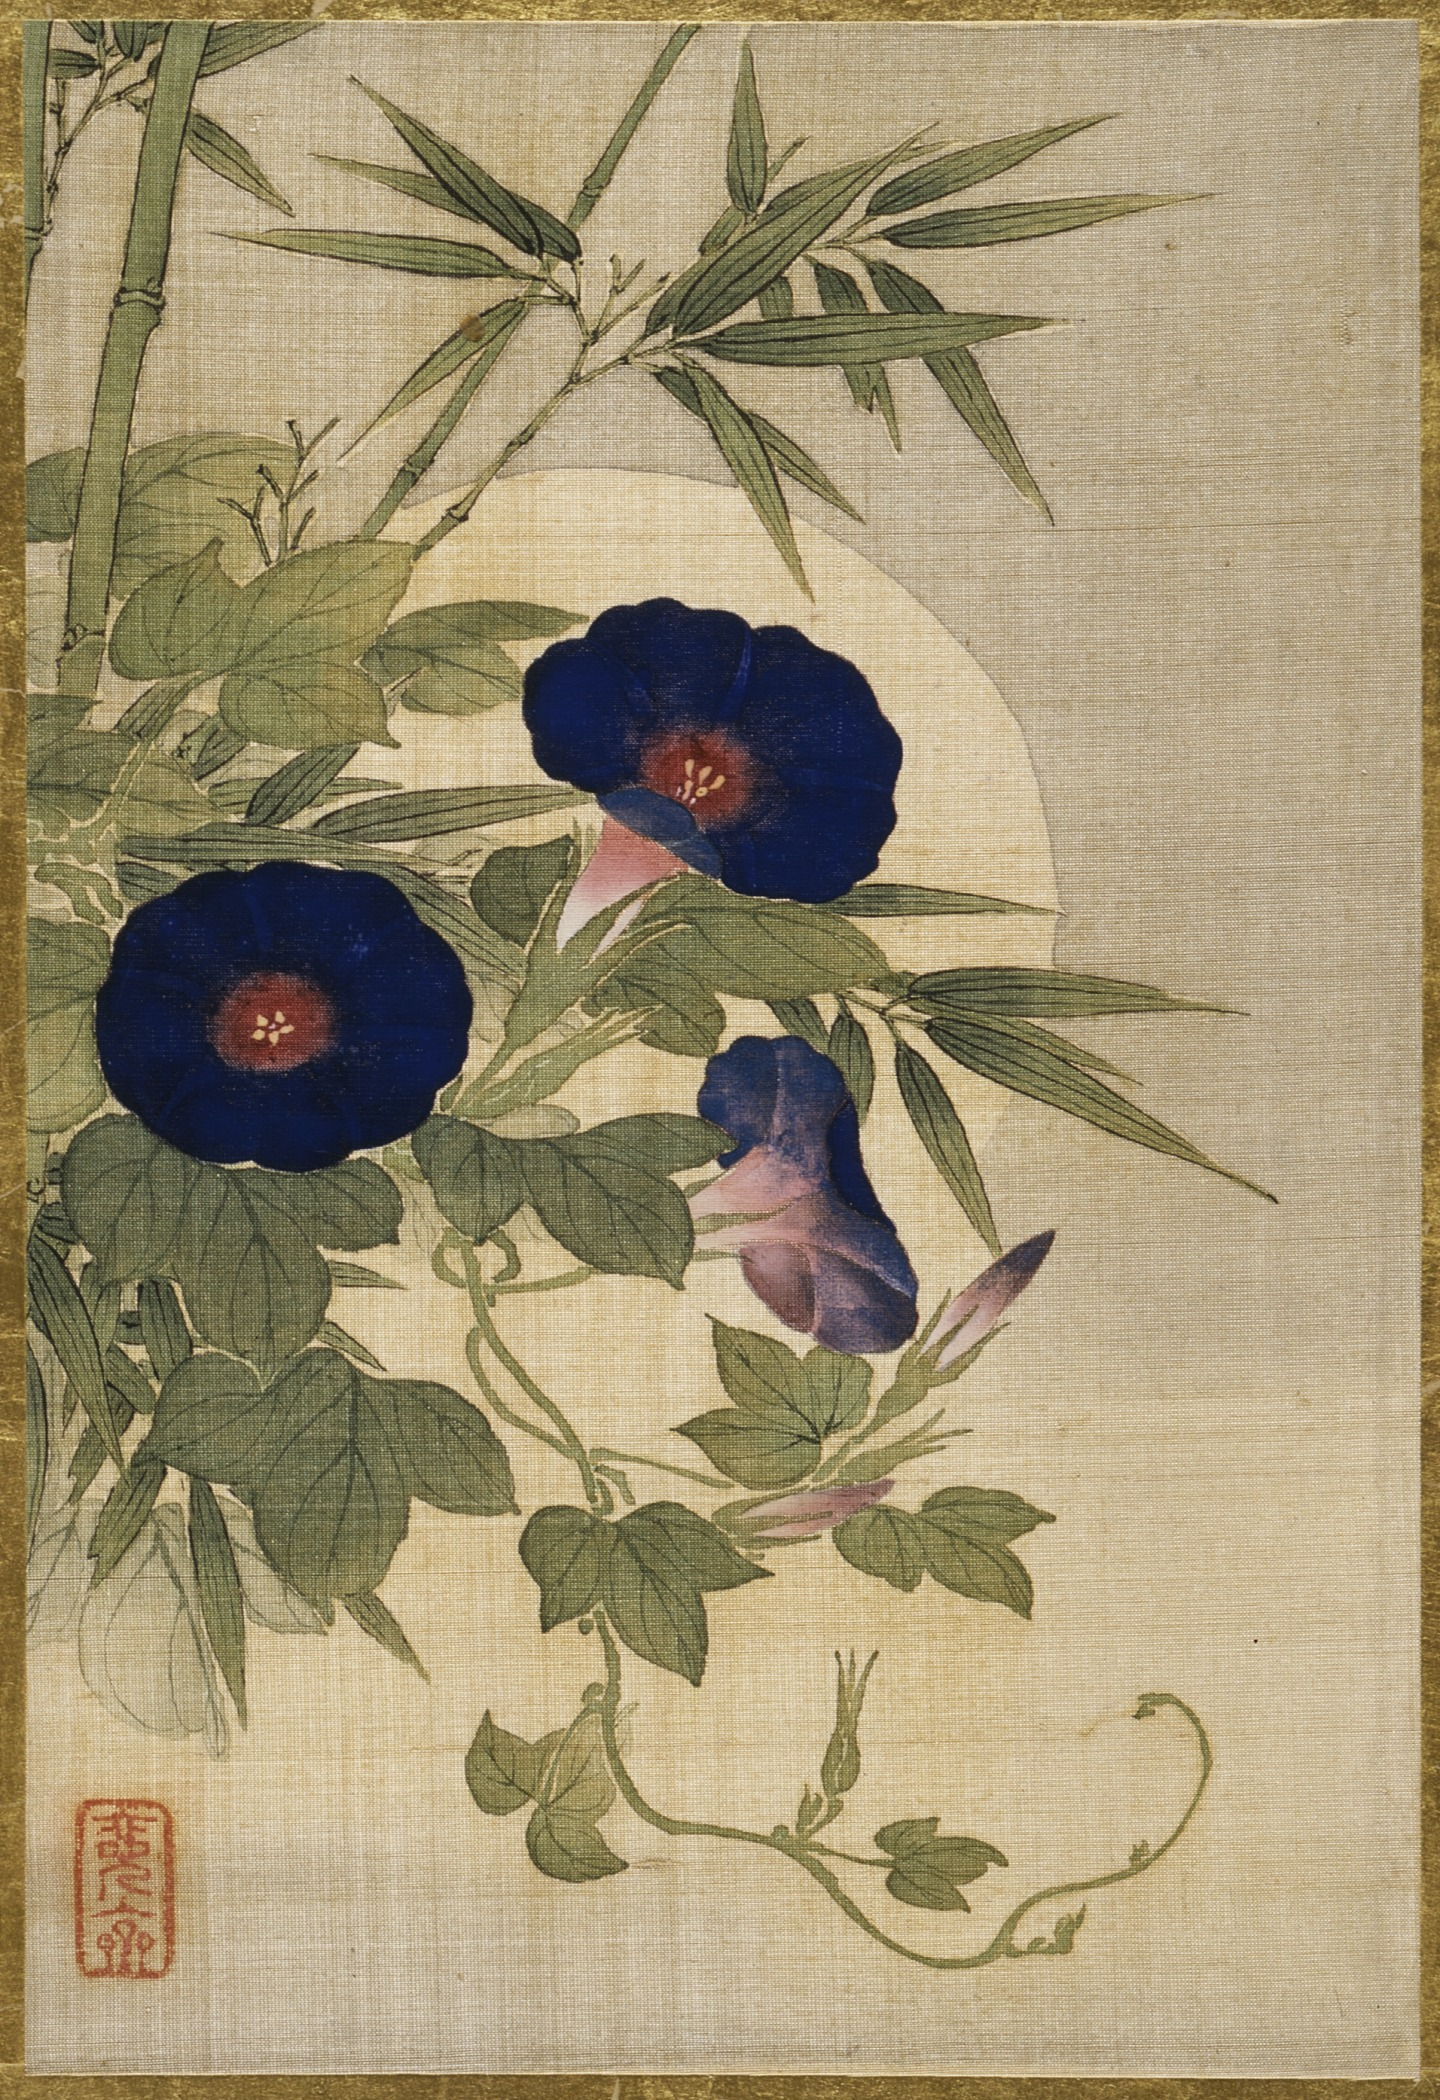 https://upload.wikimedia.org/wikipedia/commons/6/6e/Pictures_of_Flowers_and_Birds_LACMA_M.85.99_%2812_of_25%29.jpg